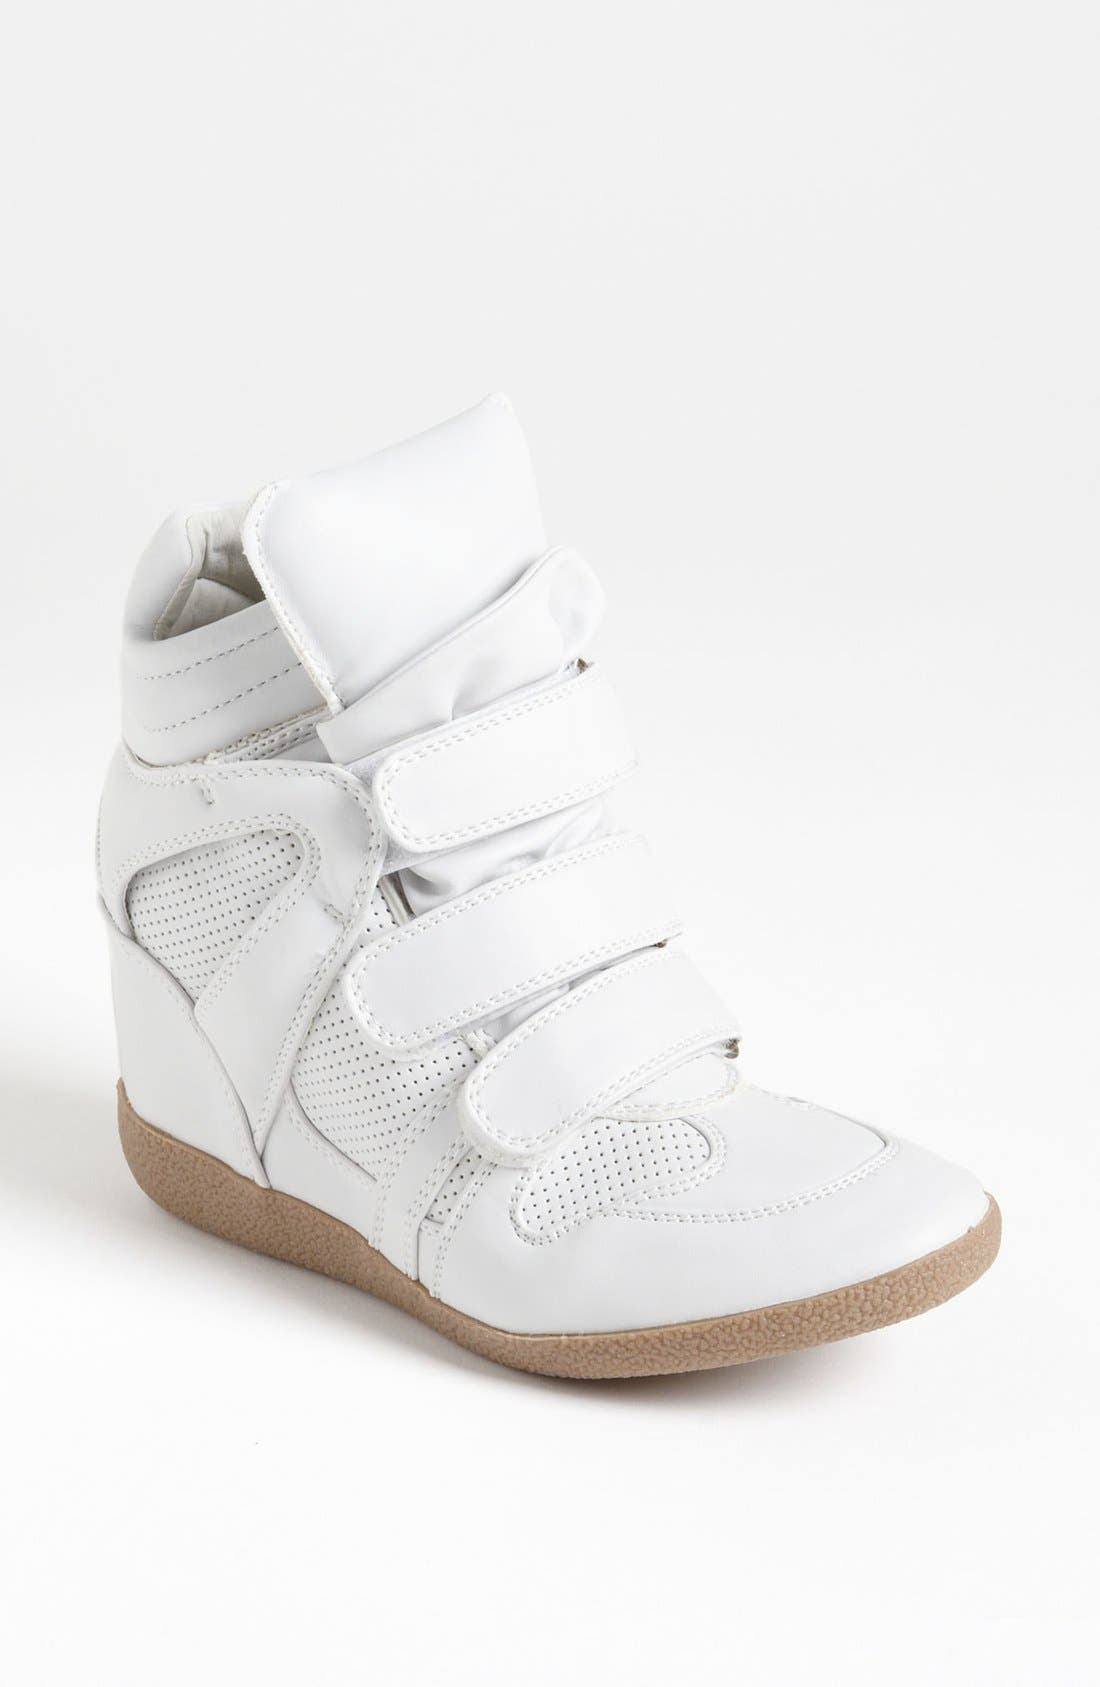 Alternate Image 1 Selected - Steve Madden 'Hilight' Wedge Sneaker